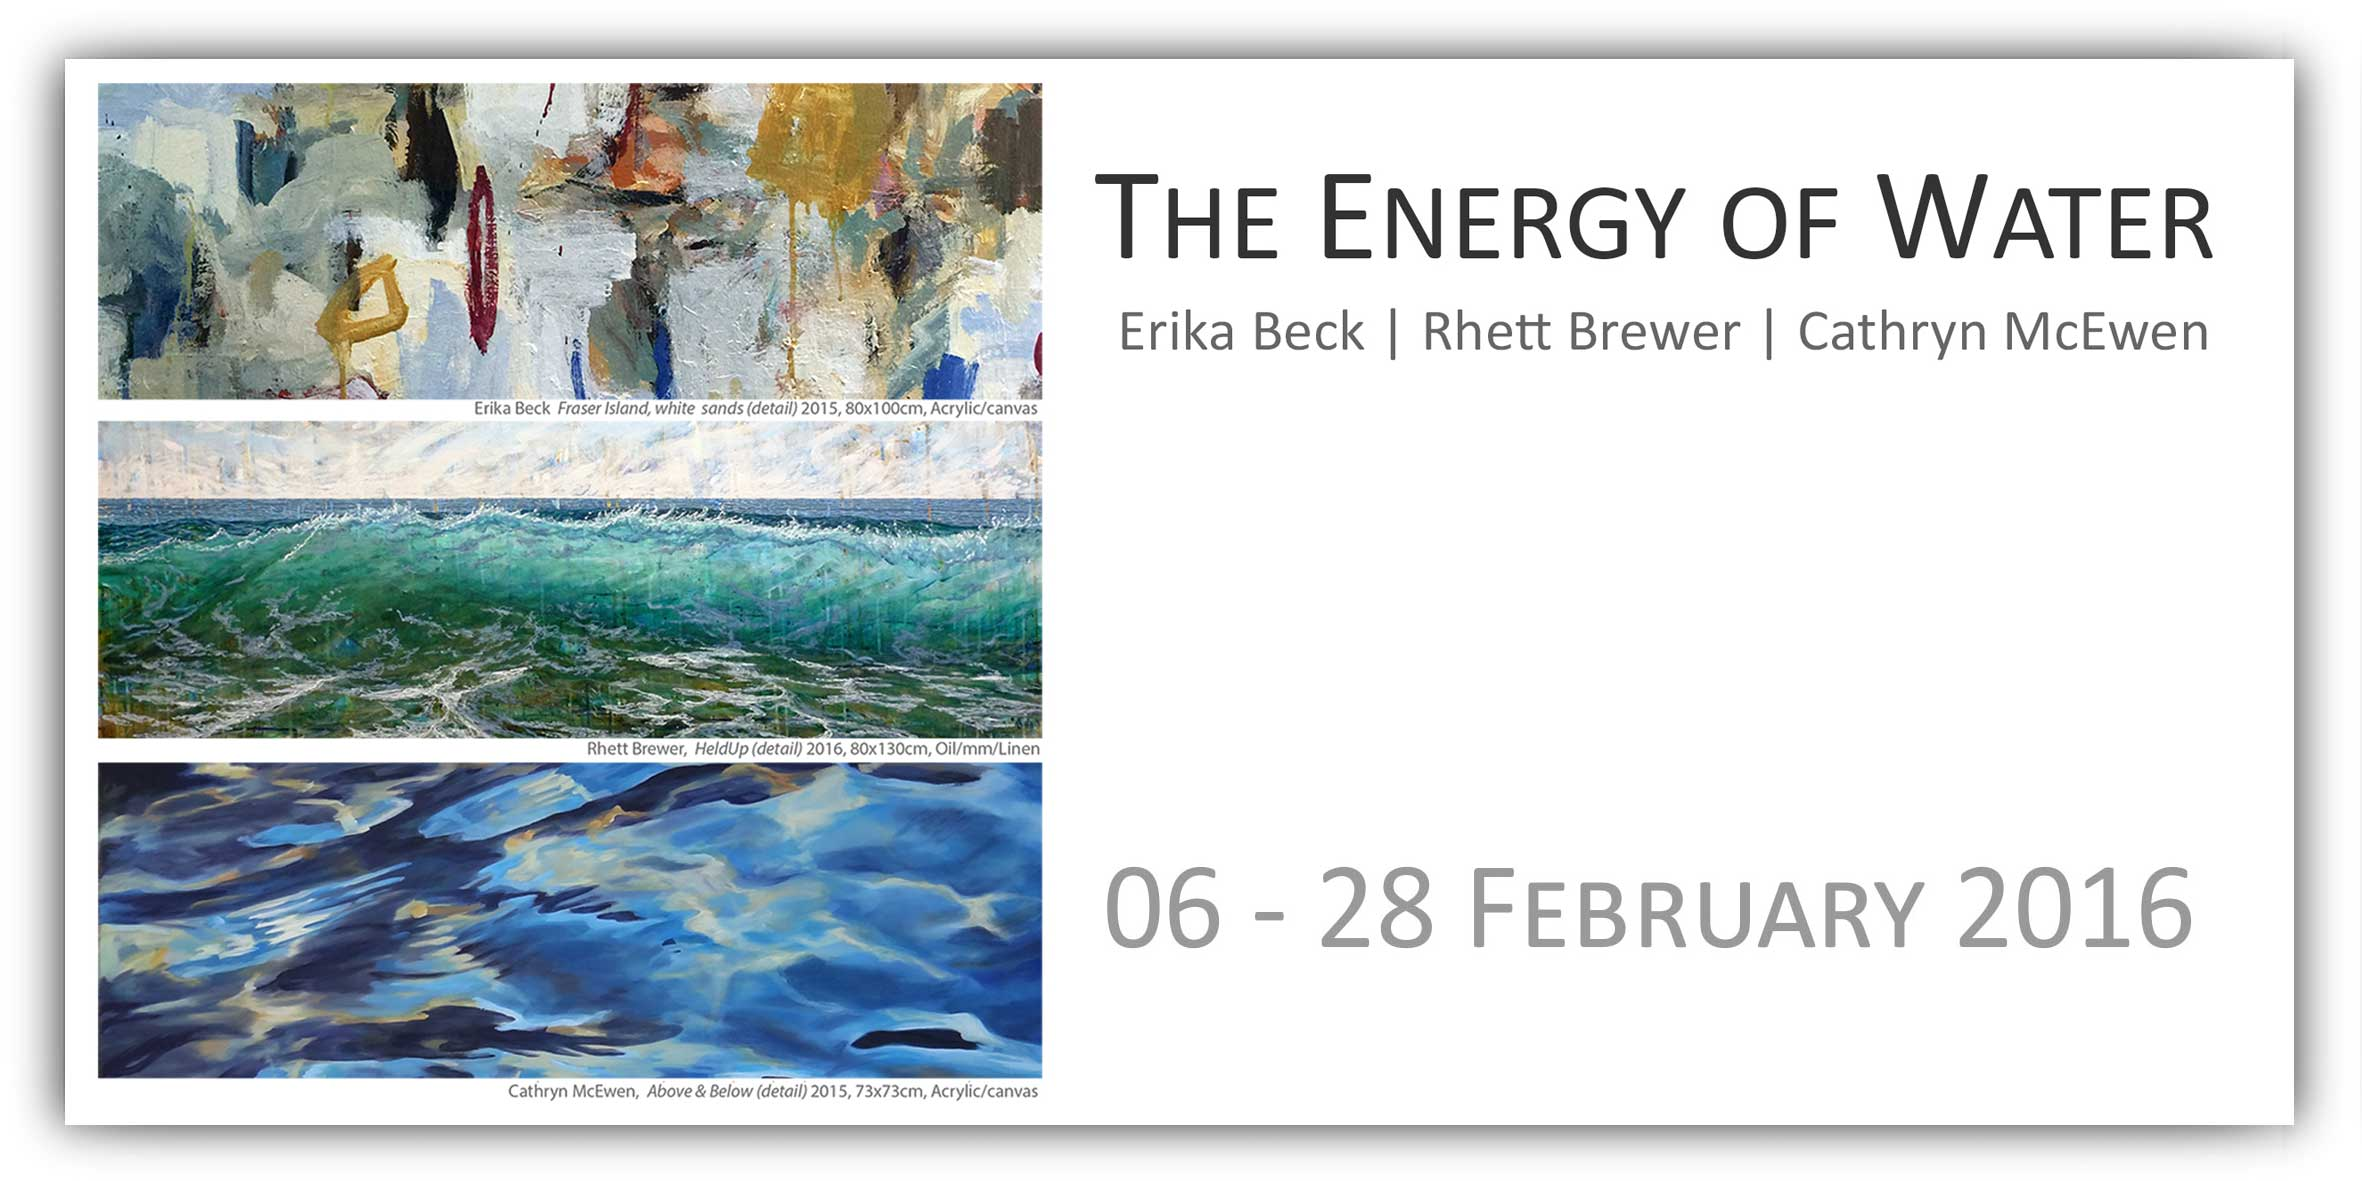 View Exhibition at Artsite Gallery. 06 - 28 February 2016: The Energy of Water with Erika Beck | Rhett Brewer | Cathryn McEwen.